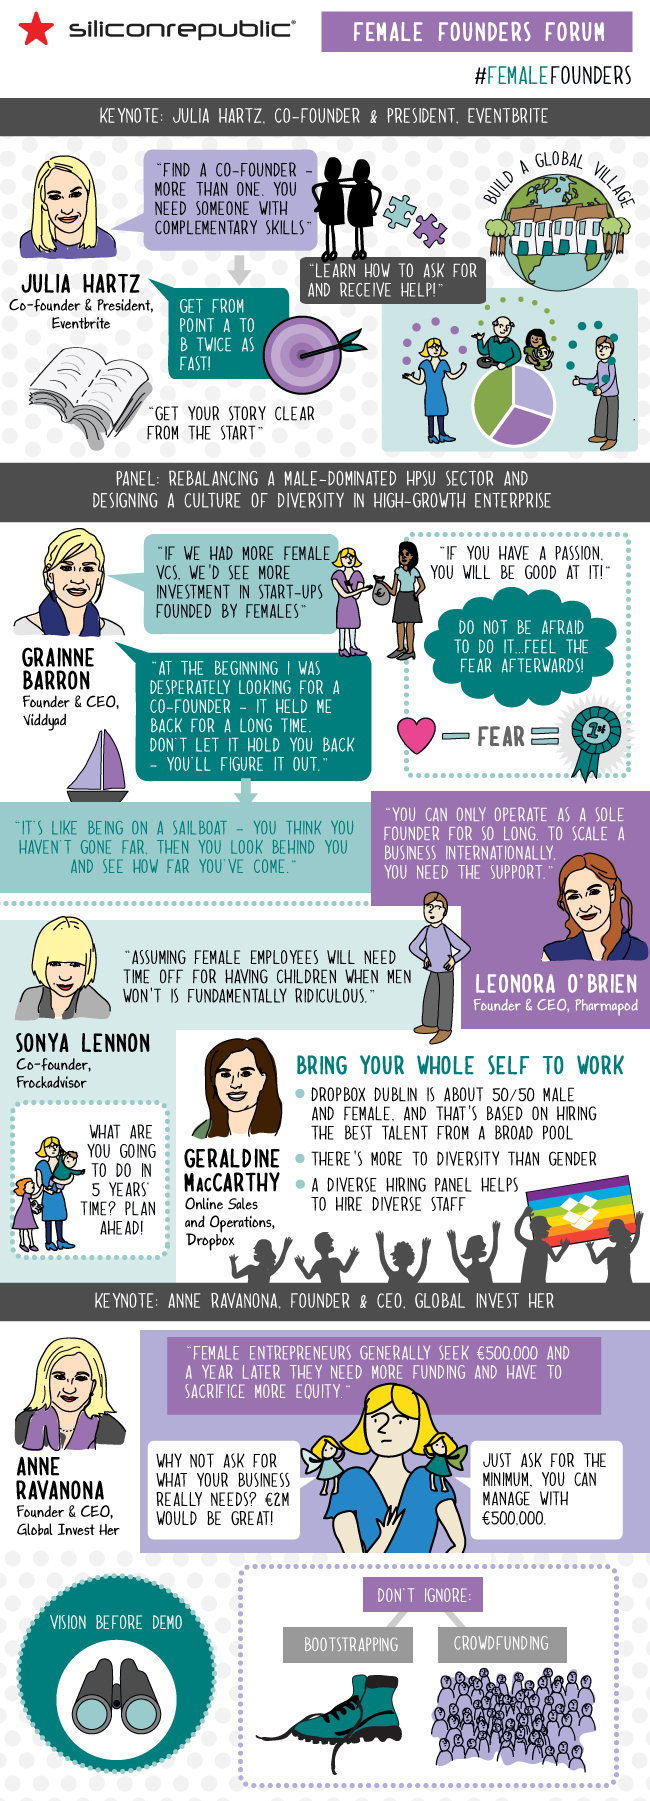 Female Founders Forum infographic - Think Visual